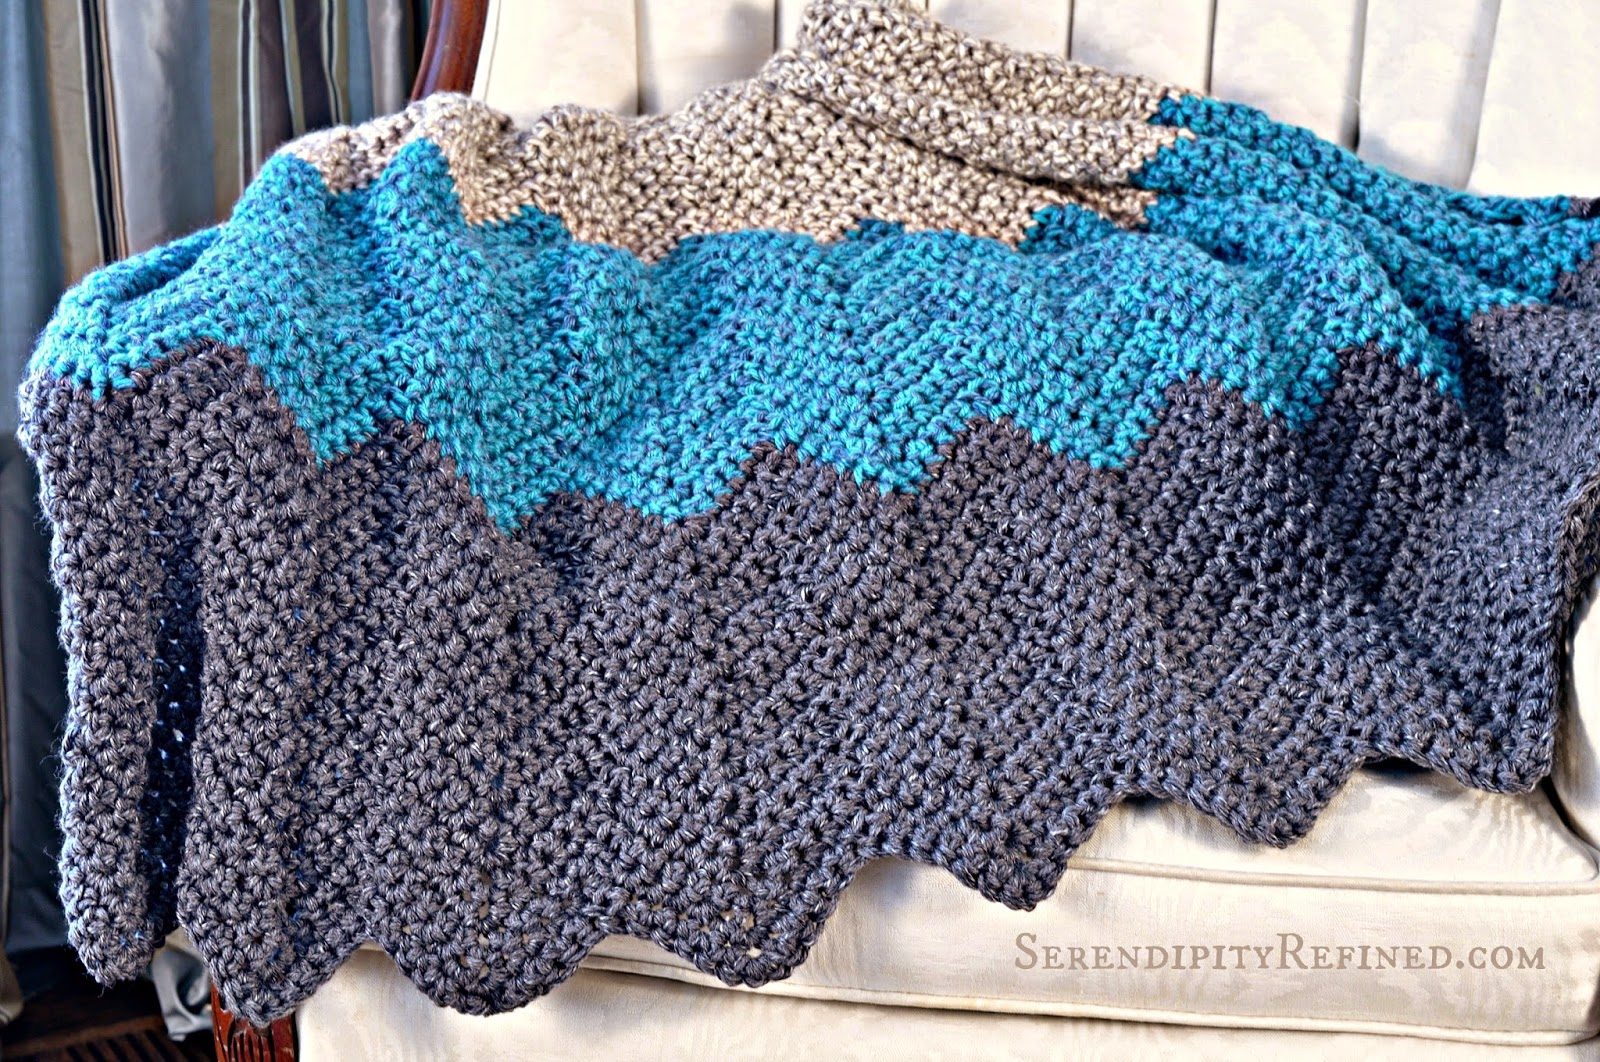 Crochet Beginner Patterns Afghan : Serendipity Refined Blog: Easy Crochet Throw Blanket Pattern